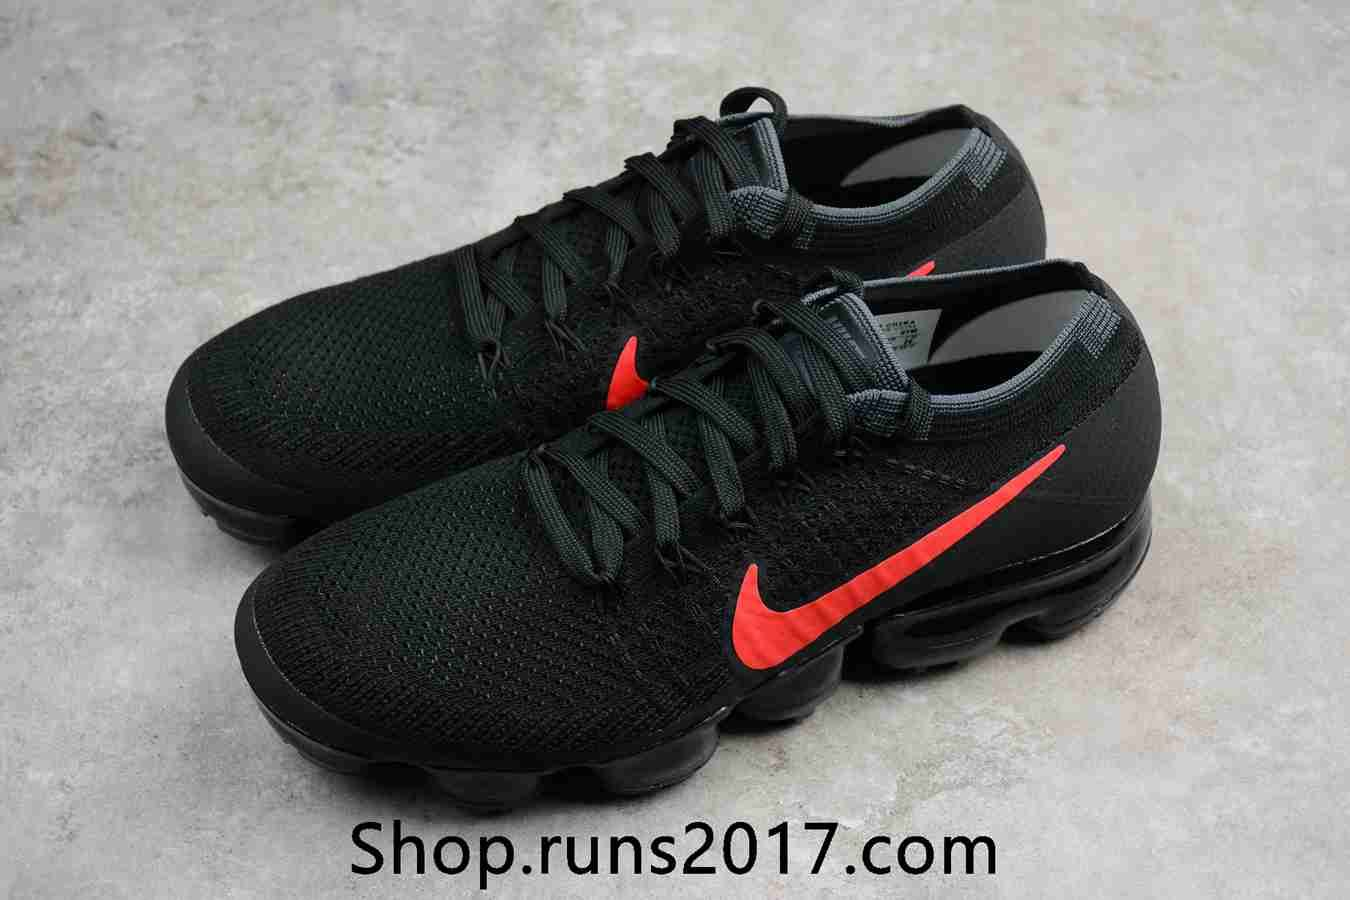 e2e93b2cb5fe2 New Nike Air VaporMax 2018 Flyknit Black Red Tick Women Men